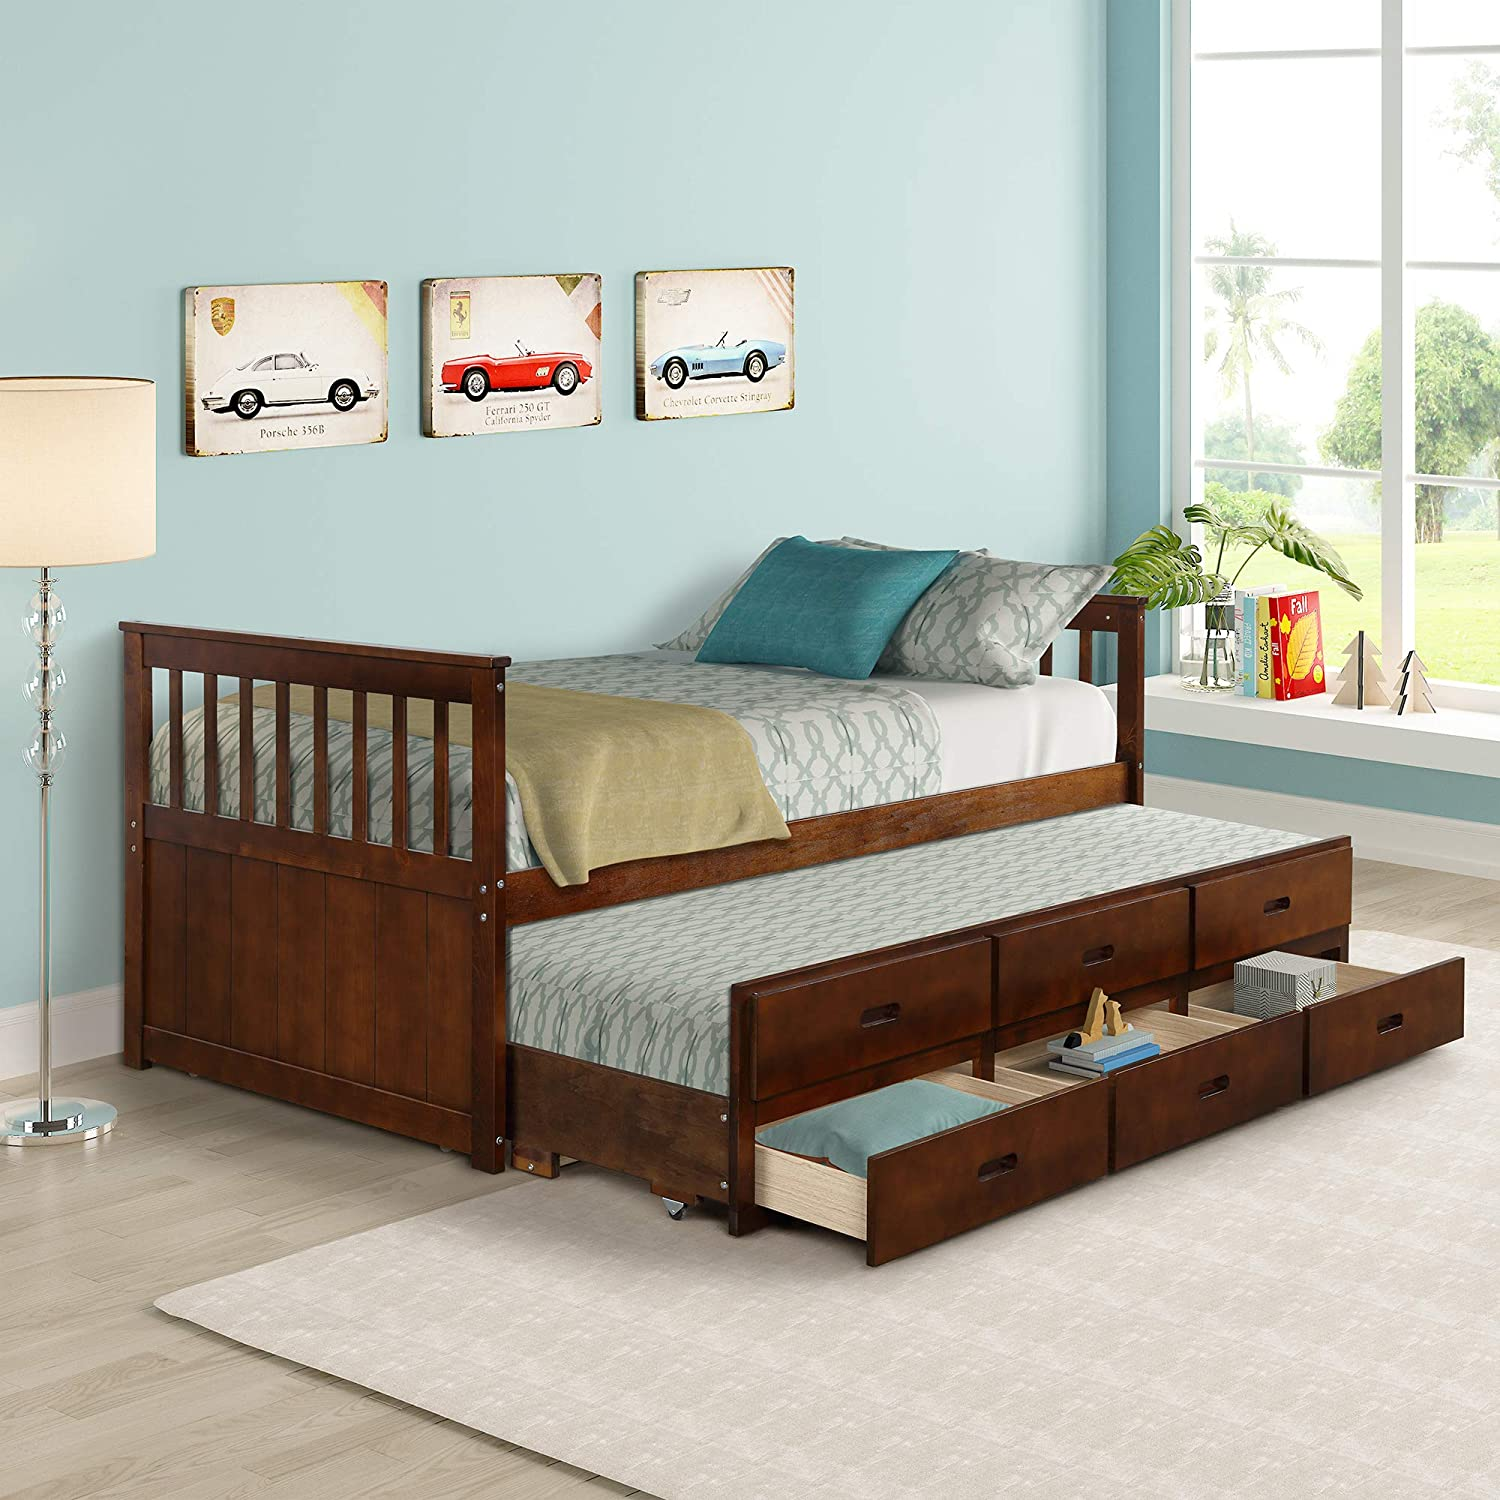 Twin Captain Bed with Trundle and Drawers,3-in-oneSolid Wood Daybed,with Storage for Kids Guests for Sleepovers, Walnut